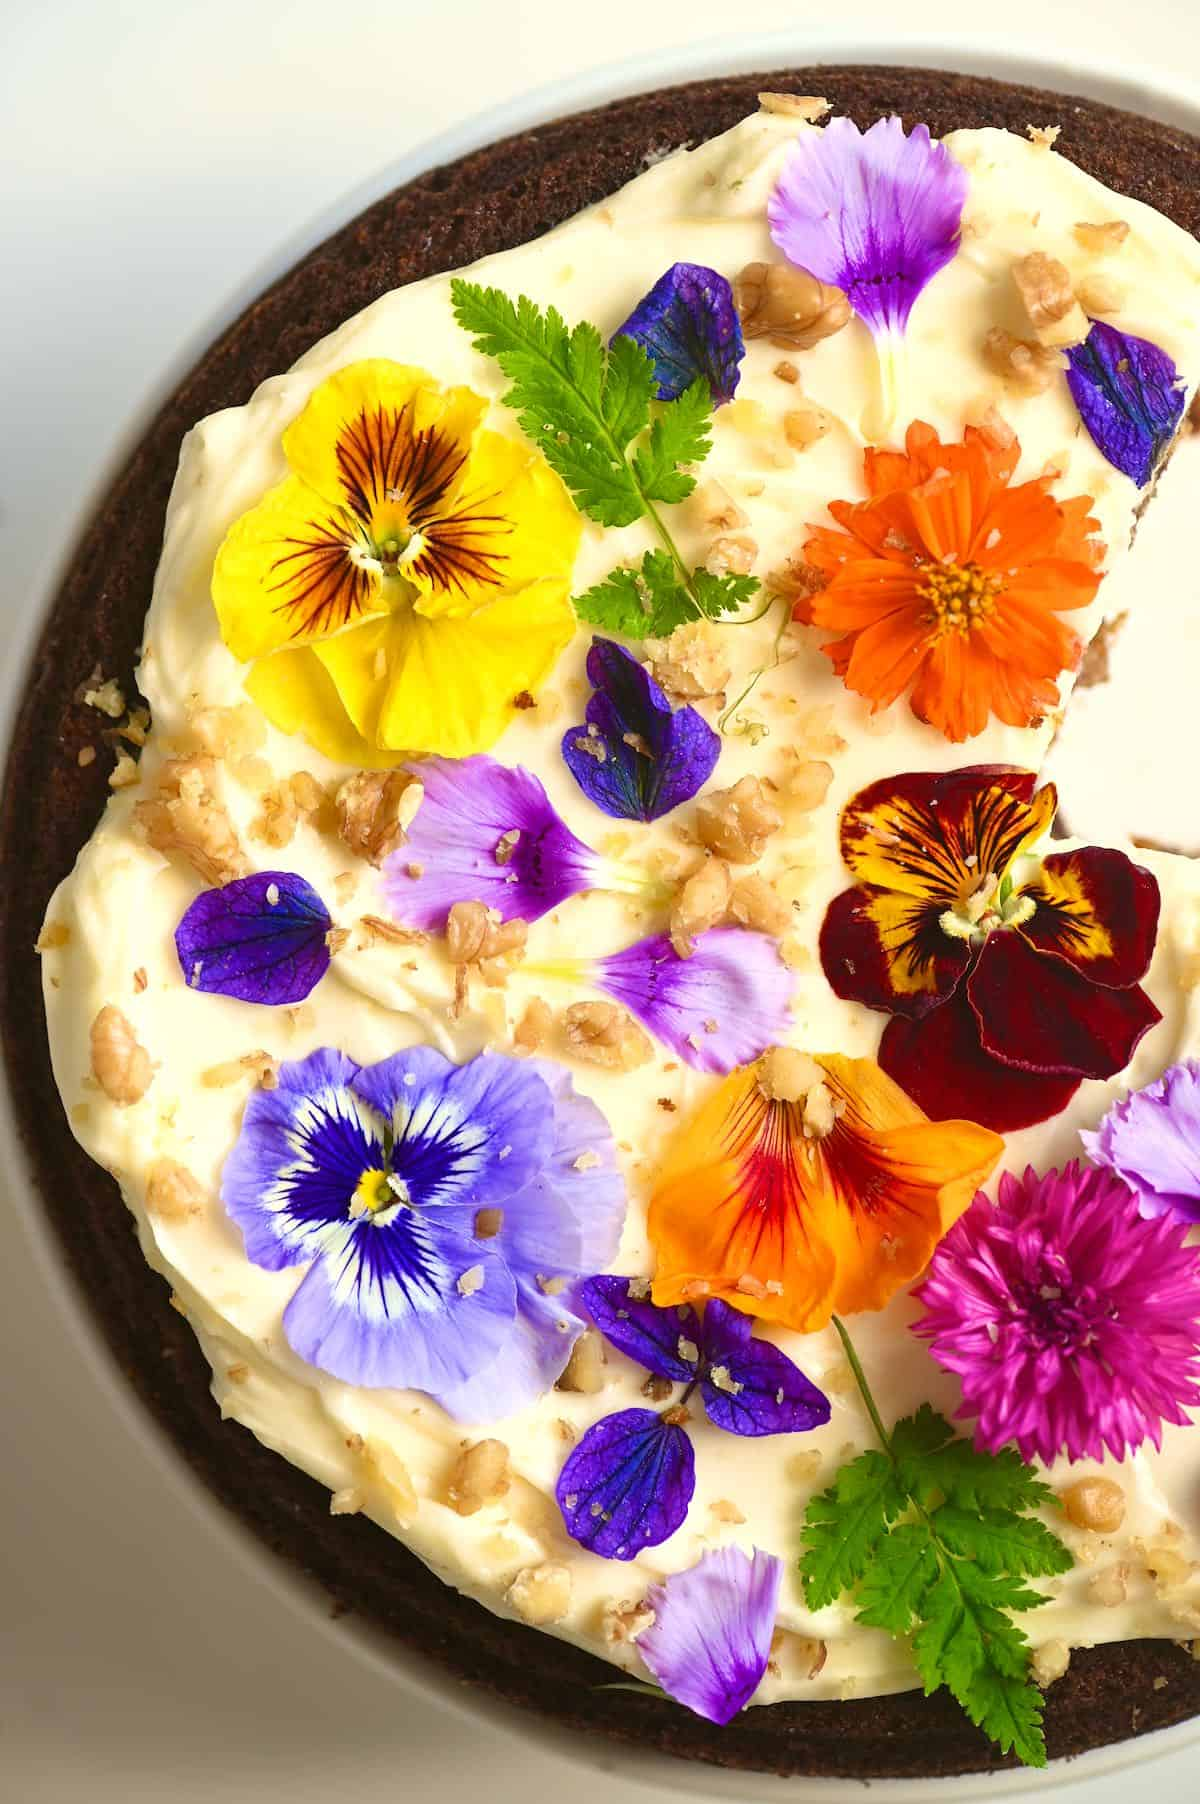 A close up of carrot cake with cream cheese frosting and edible flowers